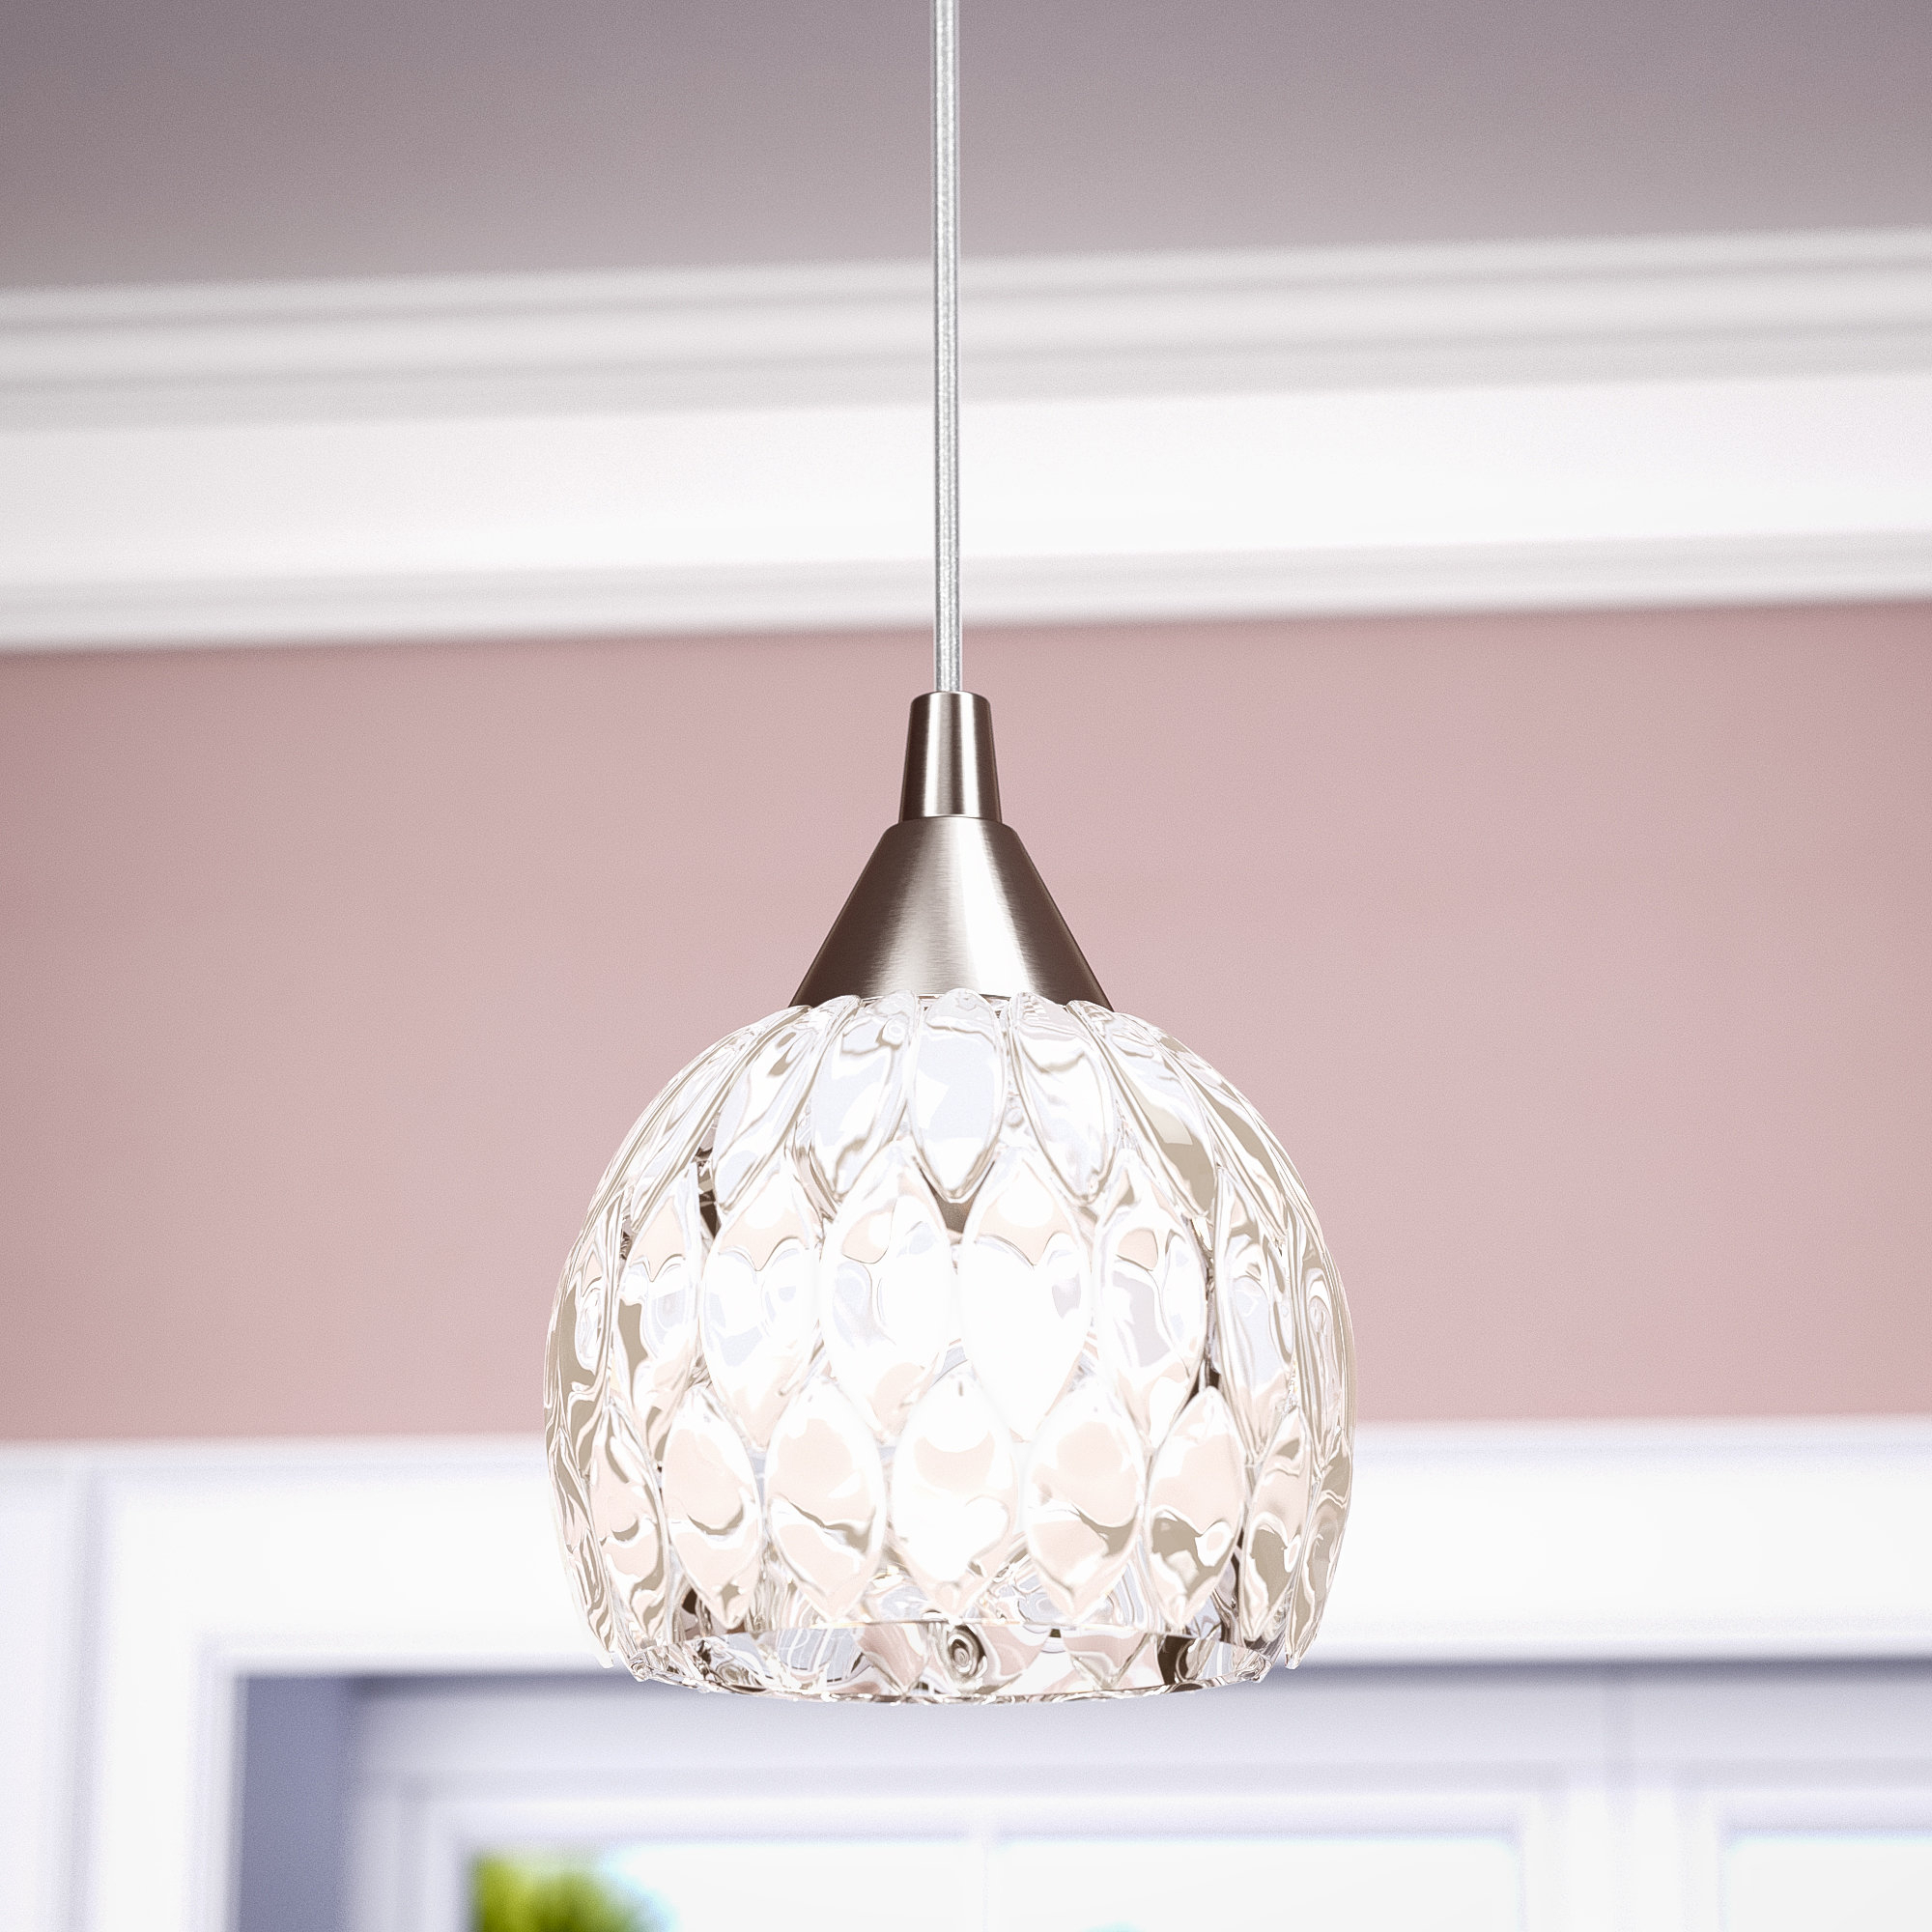 Hermione 1 Light Single Drum Pendants Intended For Most Up To Date Appleton 1 Light Globe Pendant (View 10 of 20)